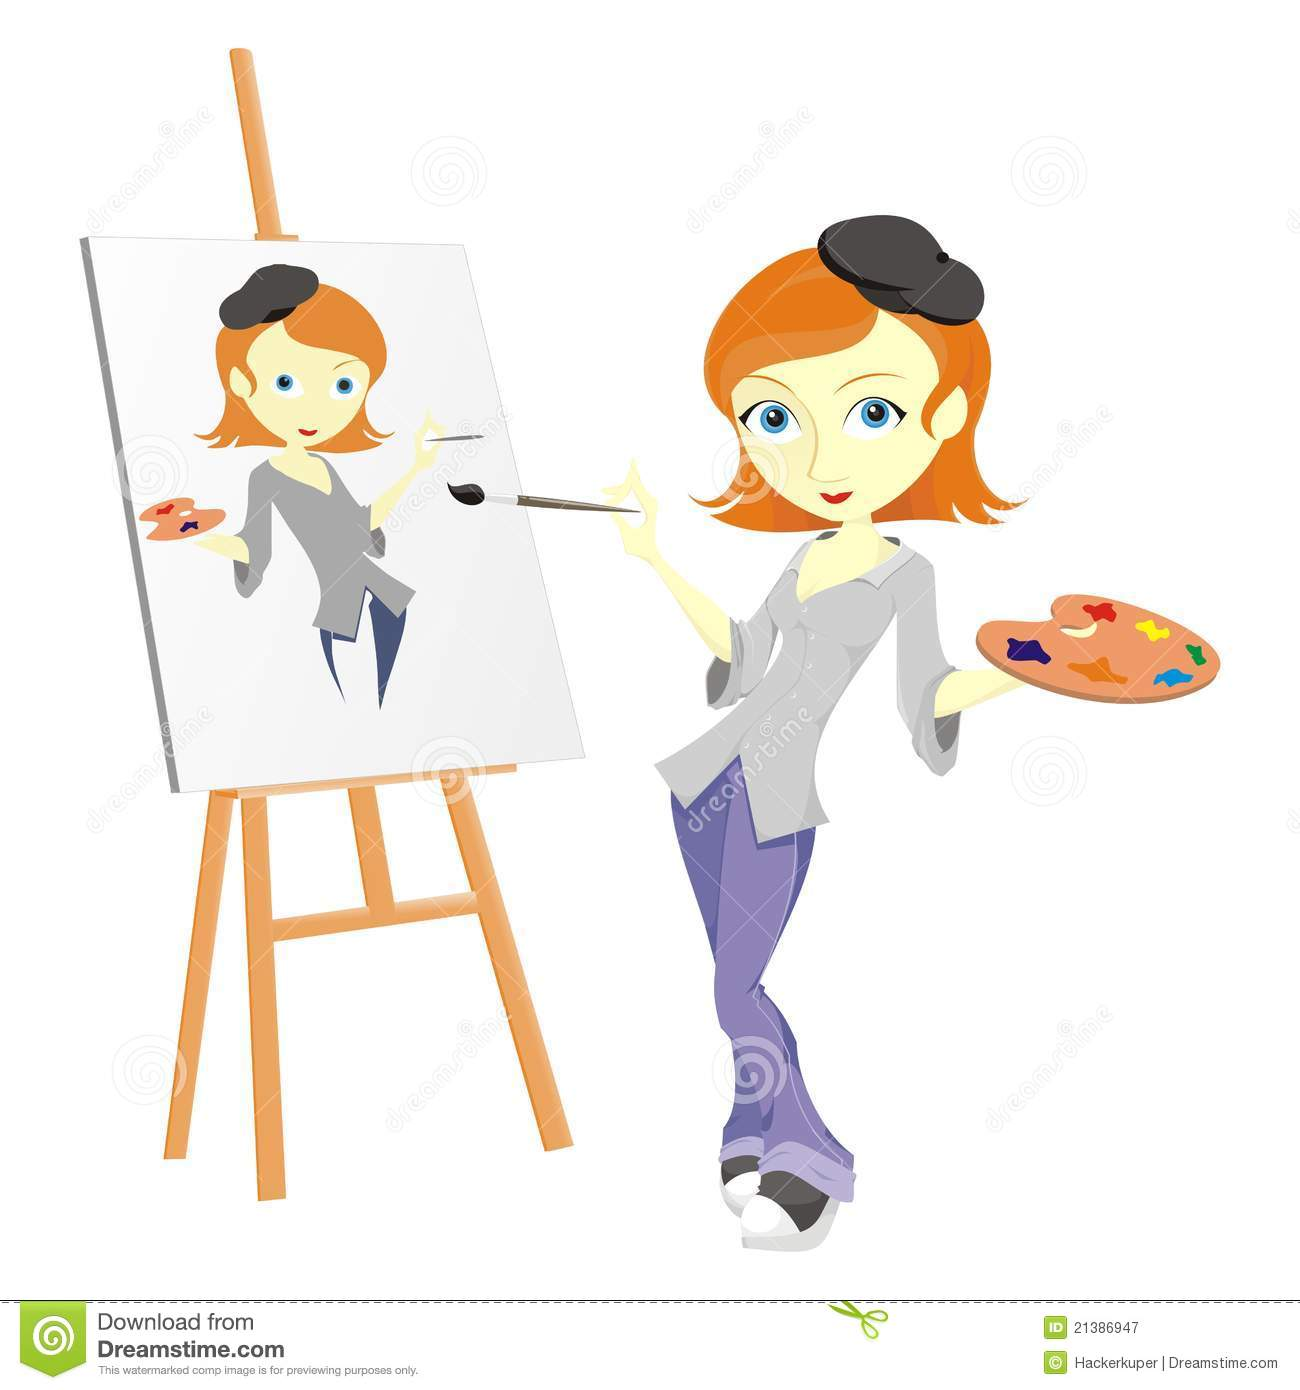 artist while painting herself. the elements is include the full artist